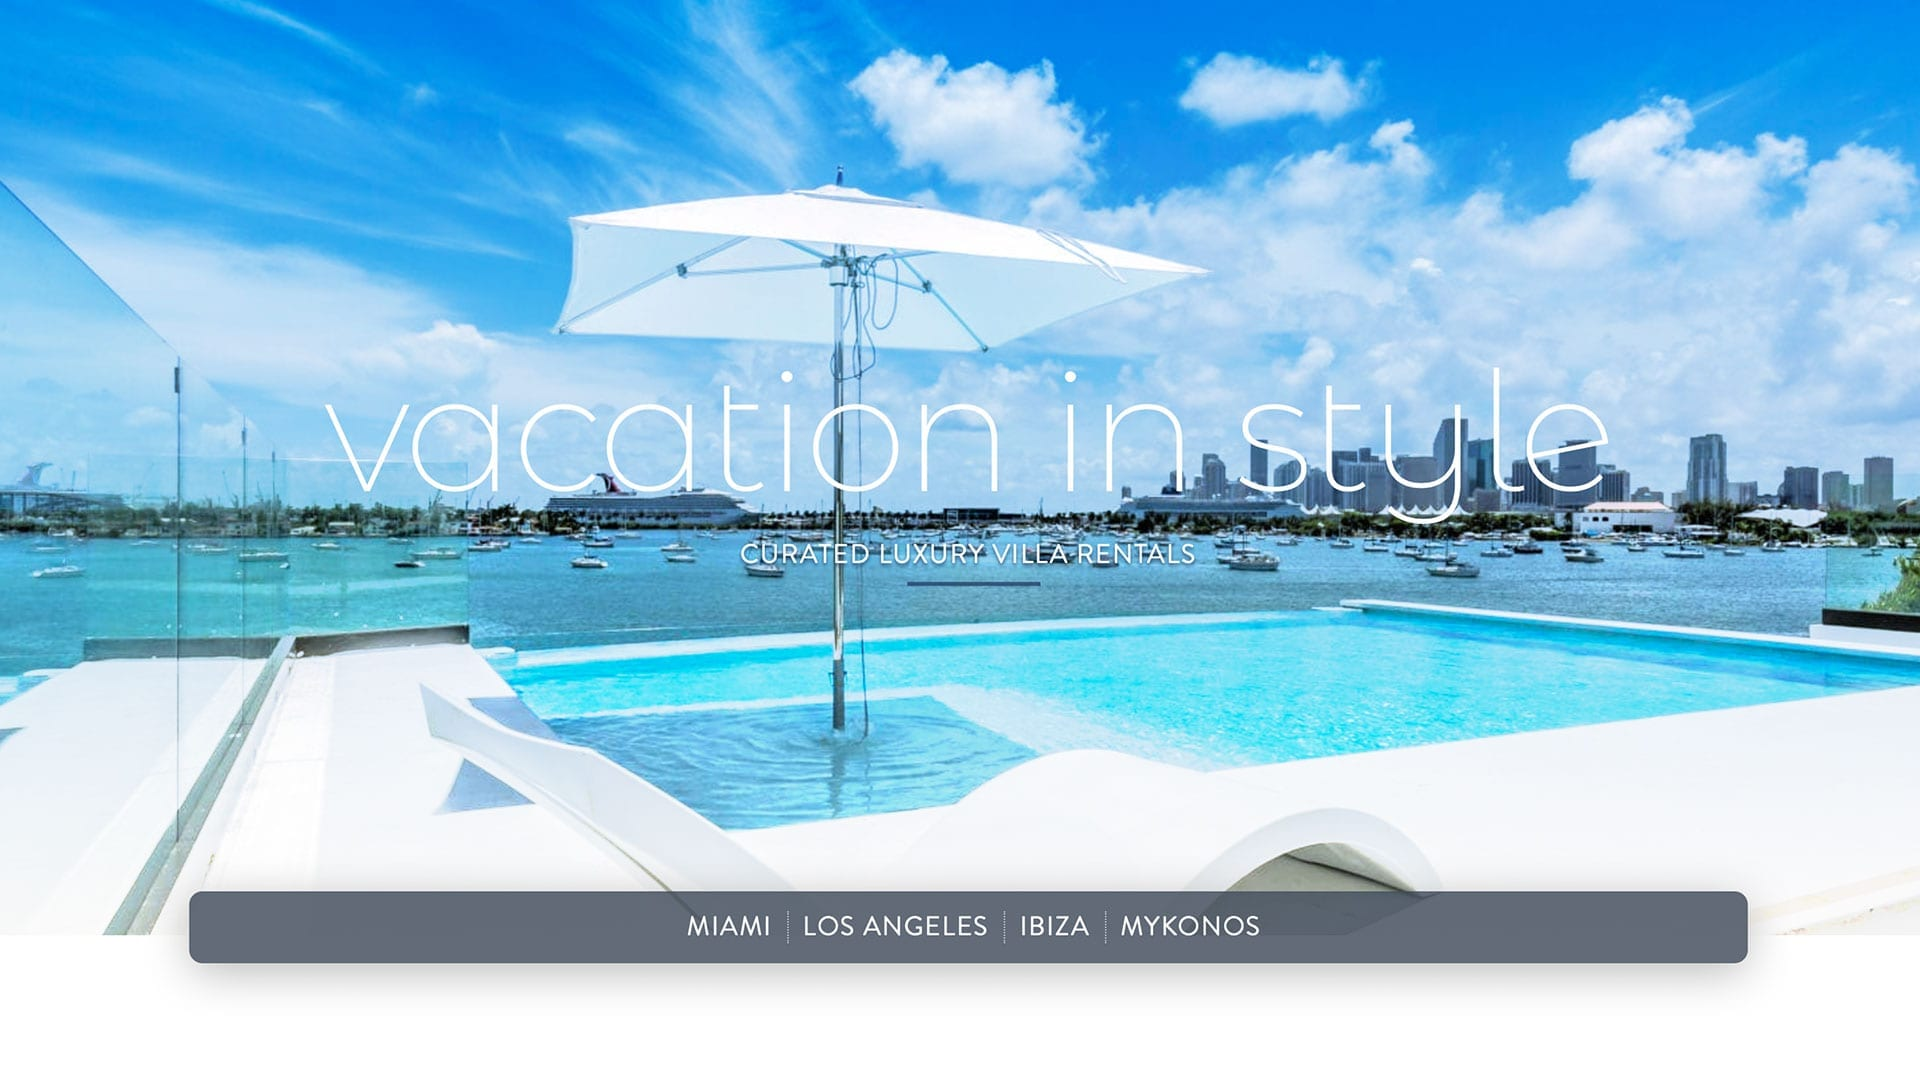 NomadeVillaCollection.com - Vacation Rental Website Design - sliStudios